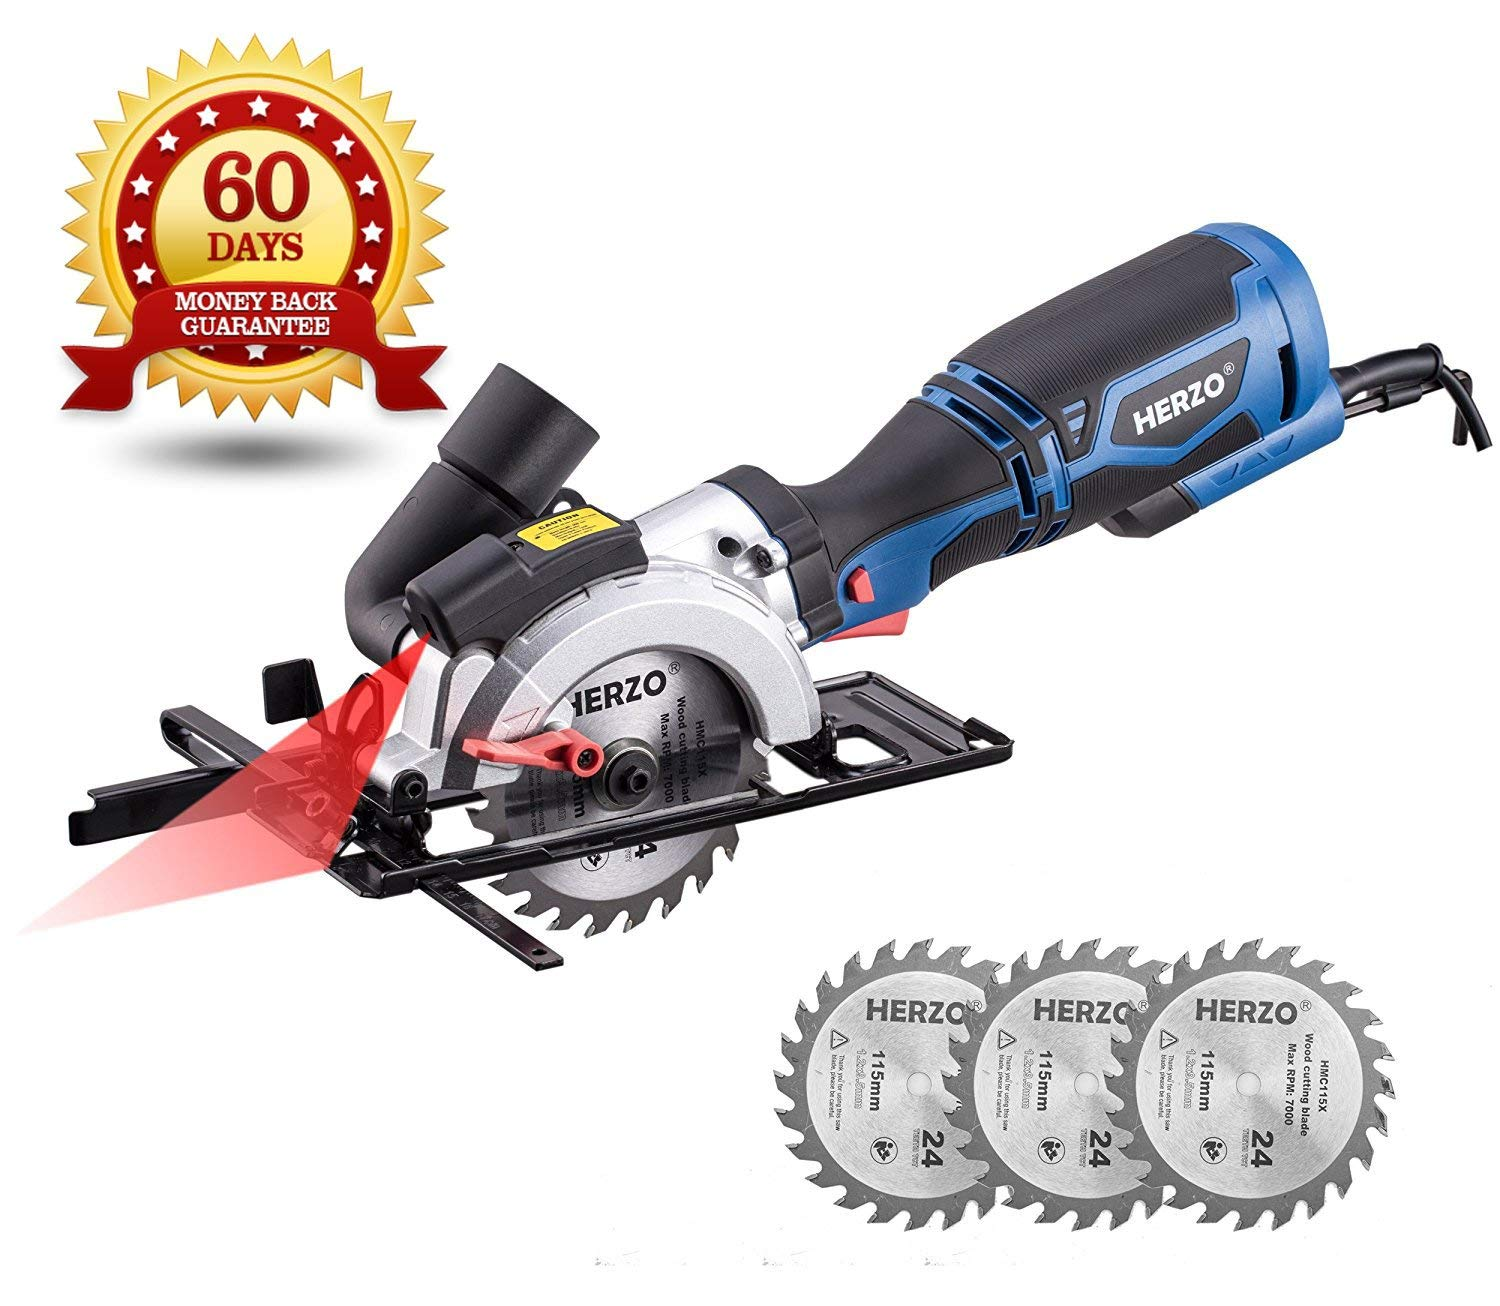 "HERZO Compact Circular Saw 4-1/2"" with Laser Guide, Max Cutting Depth 1-9/10'' (90°), 1-3/10'' (0°-45°) with 3 Wood Cutting Blades - 5.8A 3500 rpm"